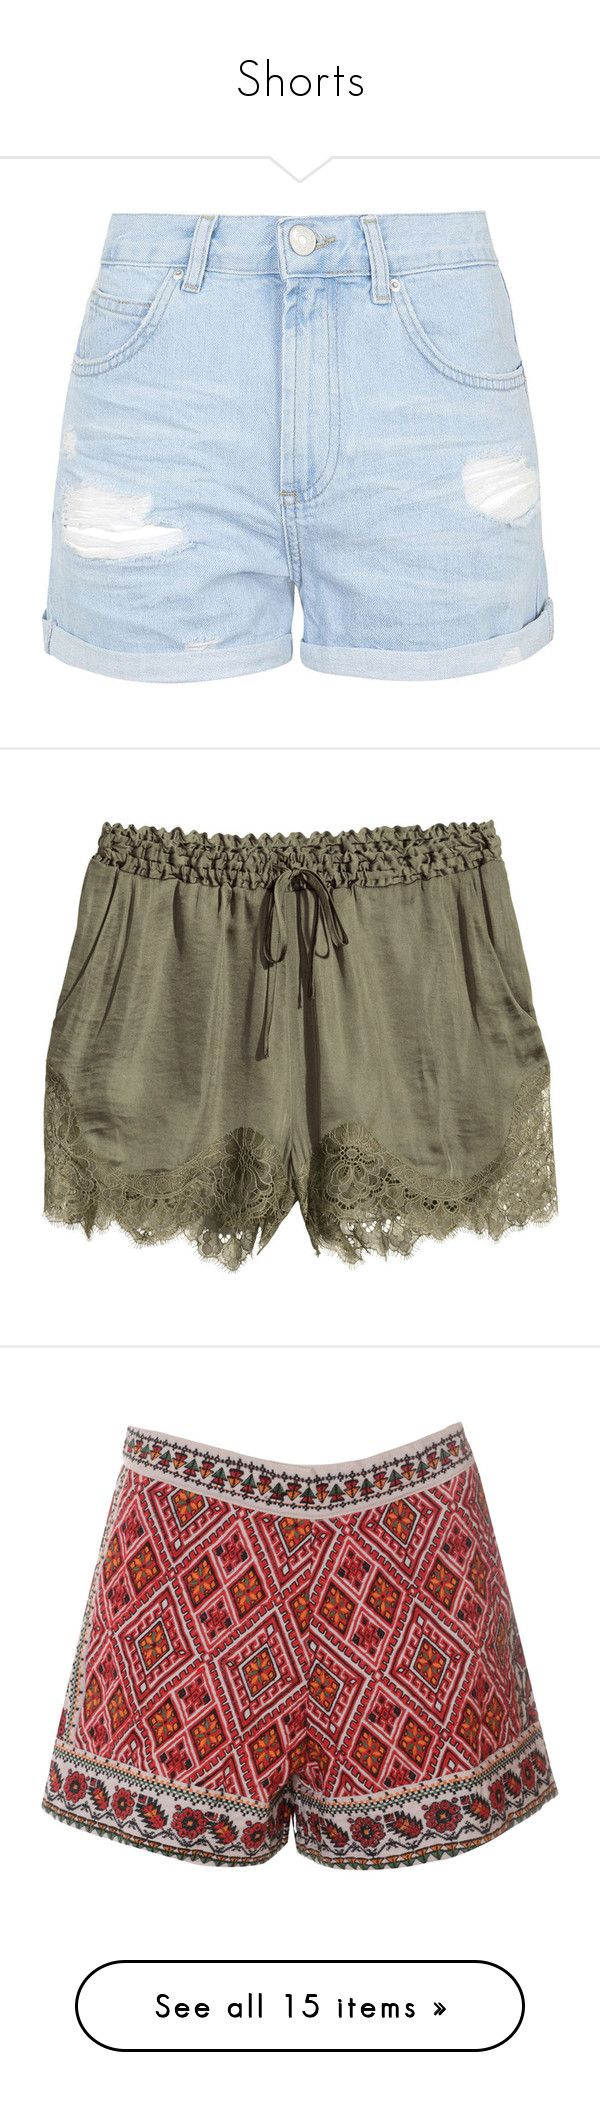 """""""Shorts"""" by otrafter ❤ liked on Polyvore featuring shorts, bottoms, pants, short, light blue, topshop shorts, distressed shorts, short shorts, ripped shorts and light blue shorts"""